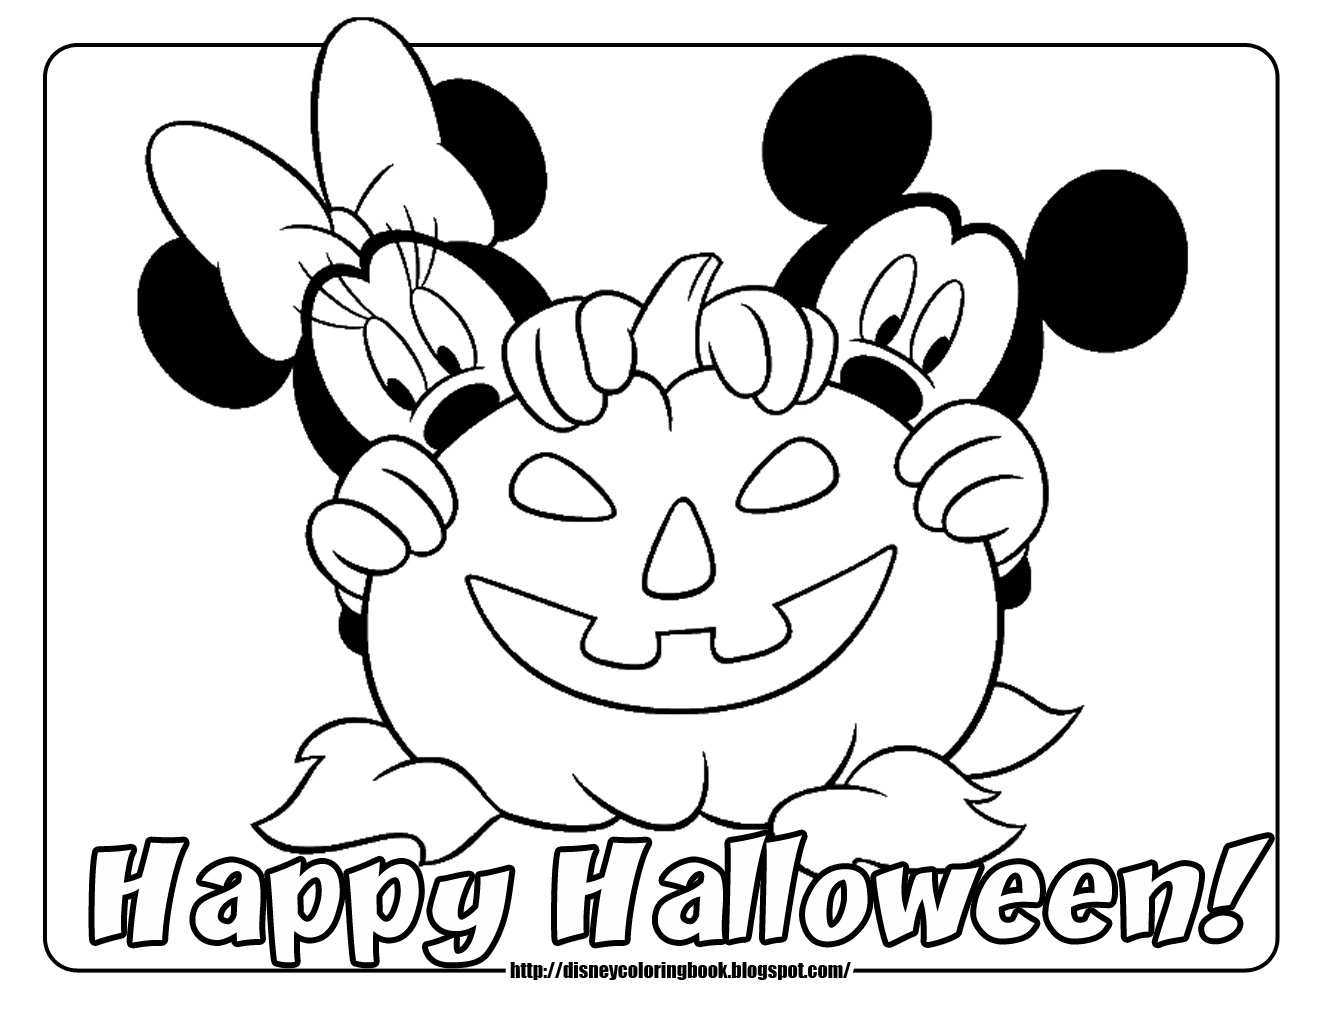 free printable halloween coloring pages - mickey and friends halloween 2 free disney halloween